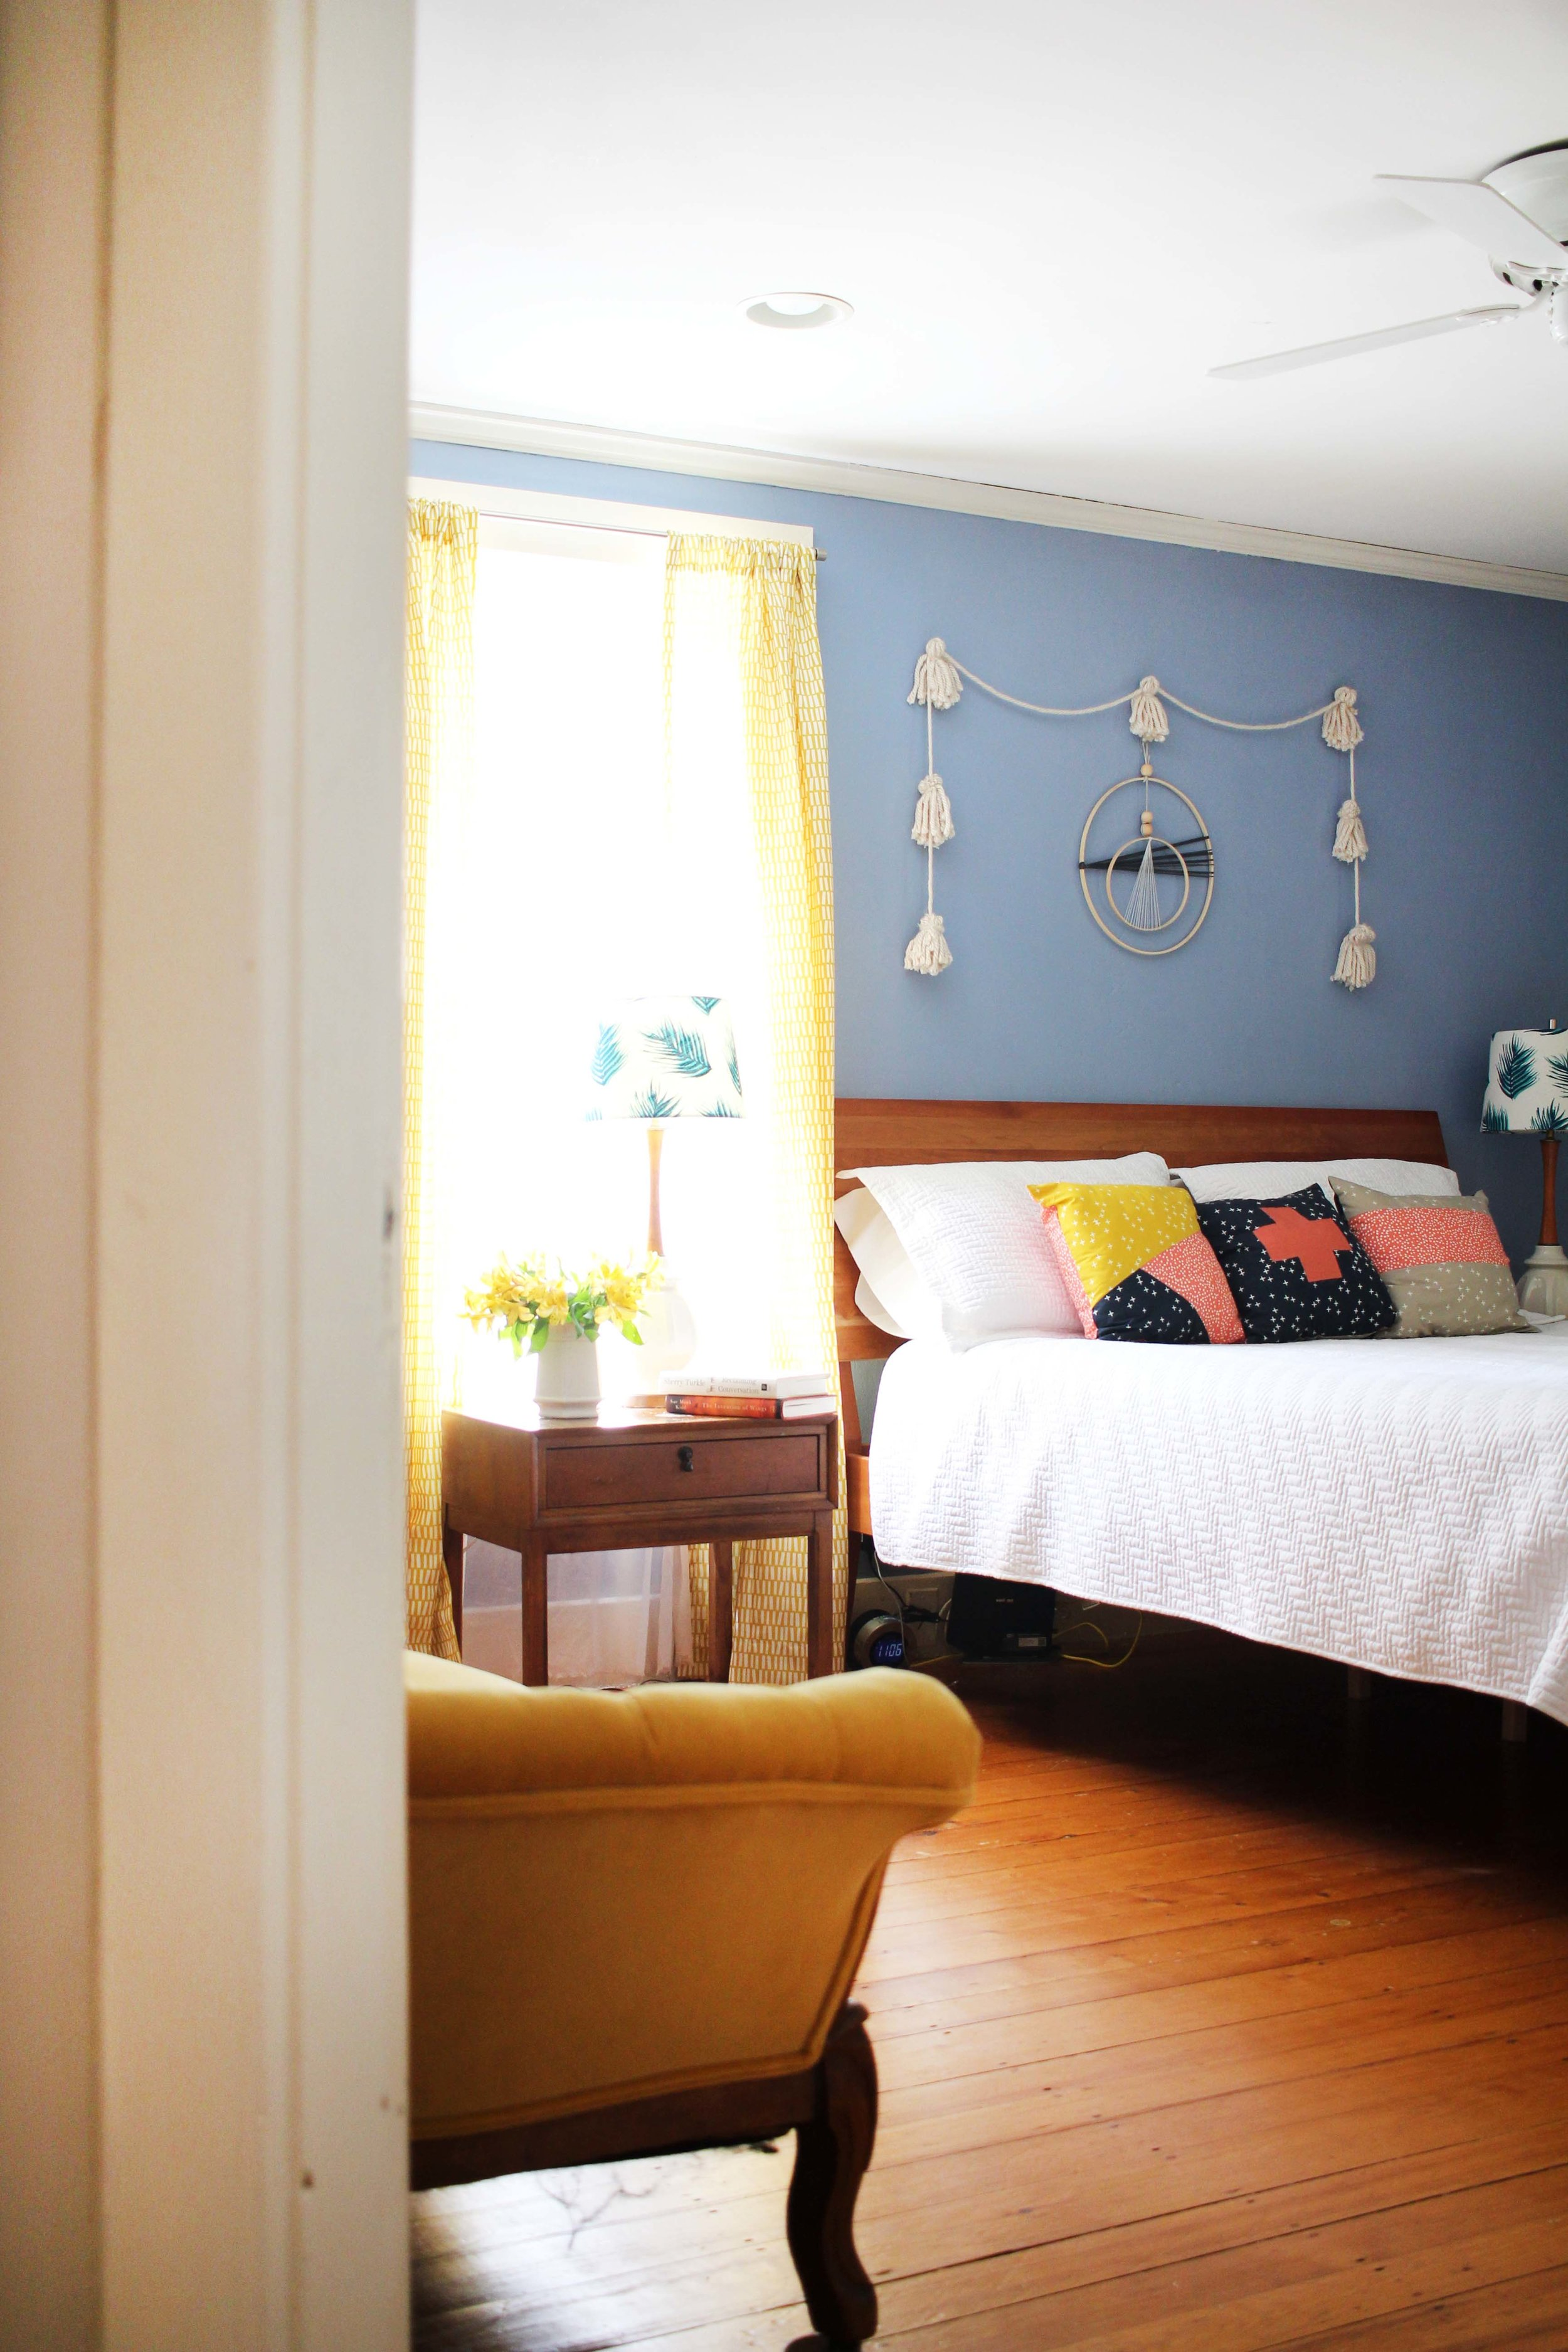 Zandra's warm, colorful, and welcoming bedroom.